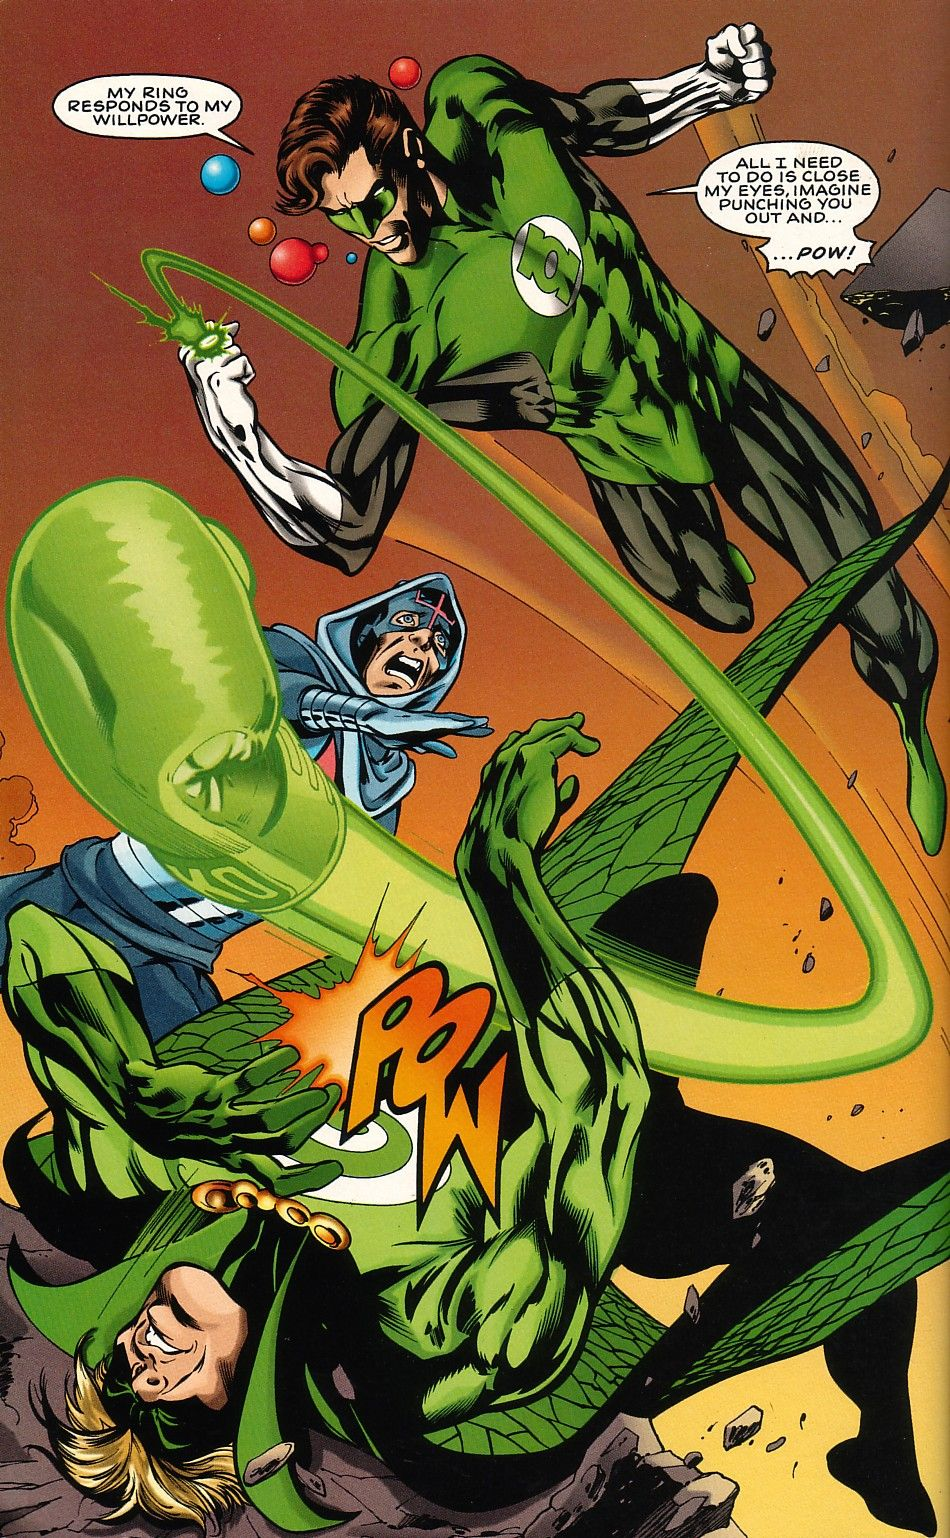 JLA: The Nail Issue #2 - Read JLA: The Nail Issue #2 comic online in ...